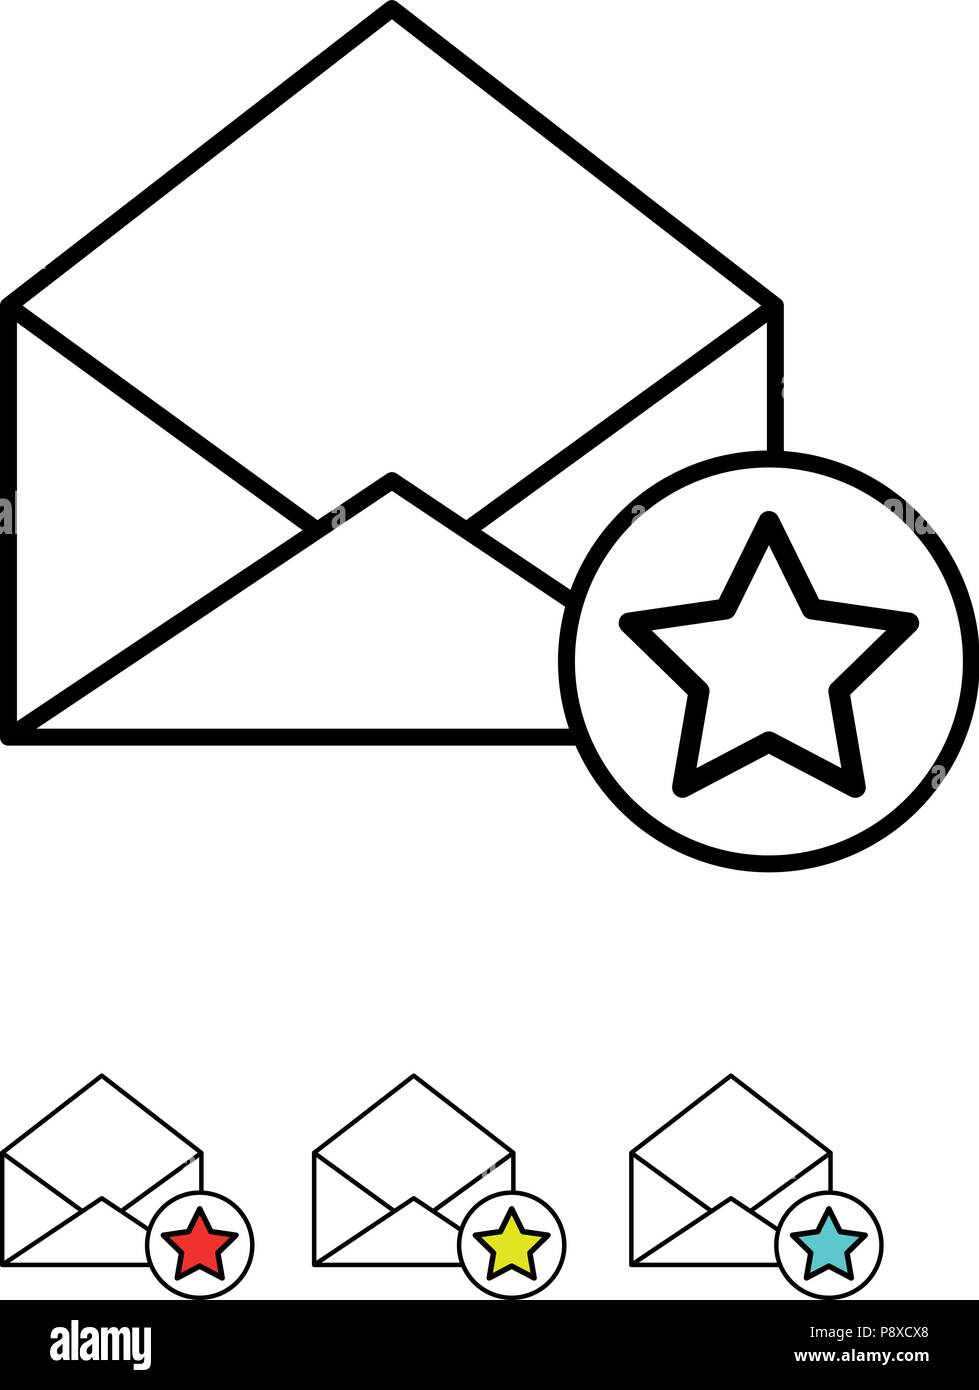 Icon set - Mail with star sign - Vector - Stock Image